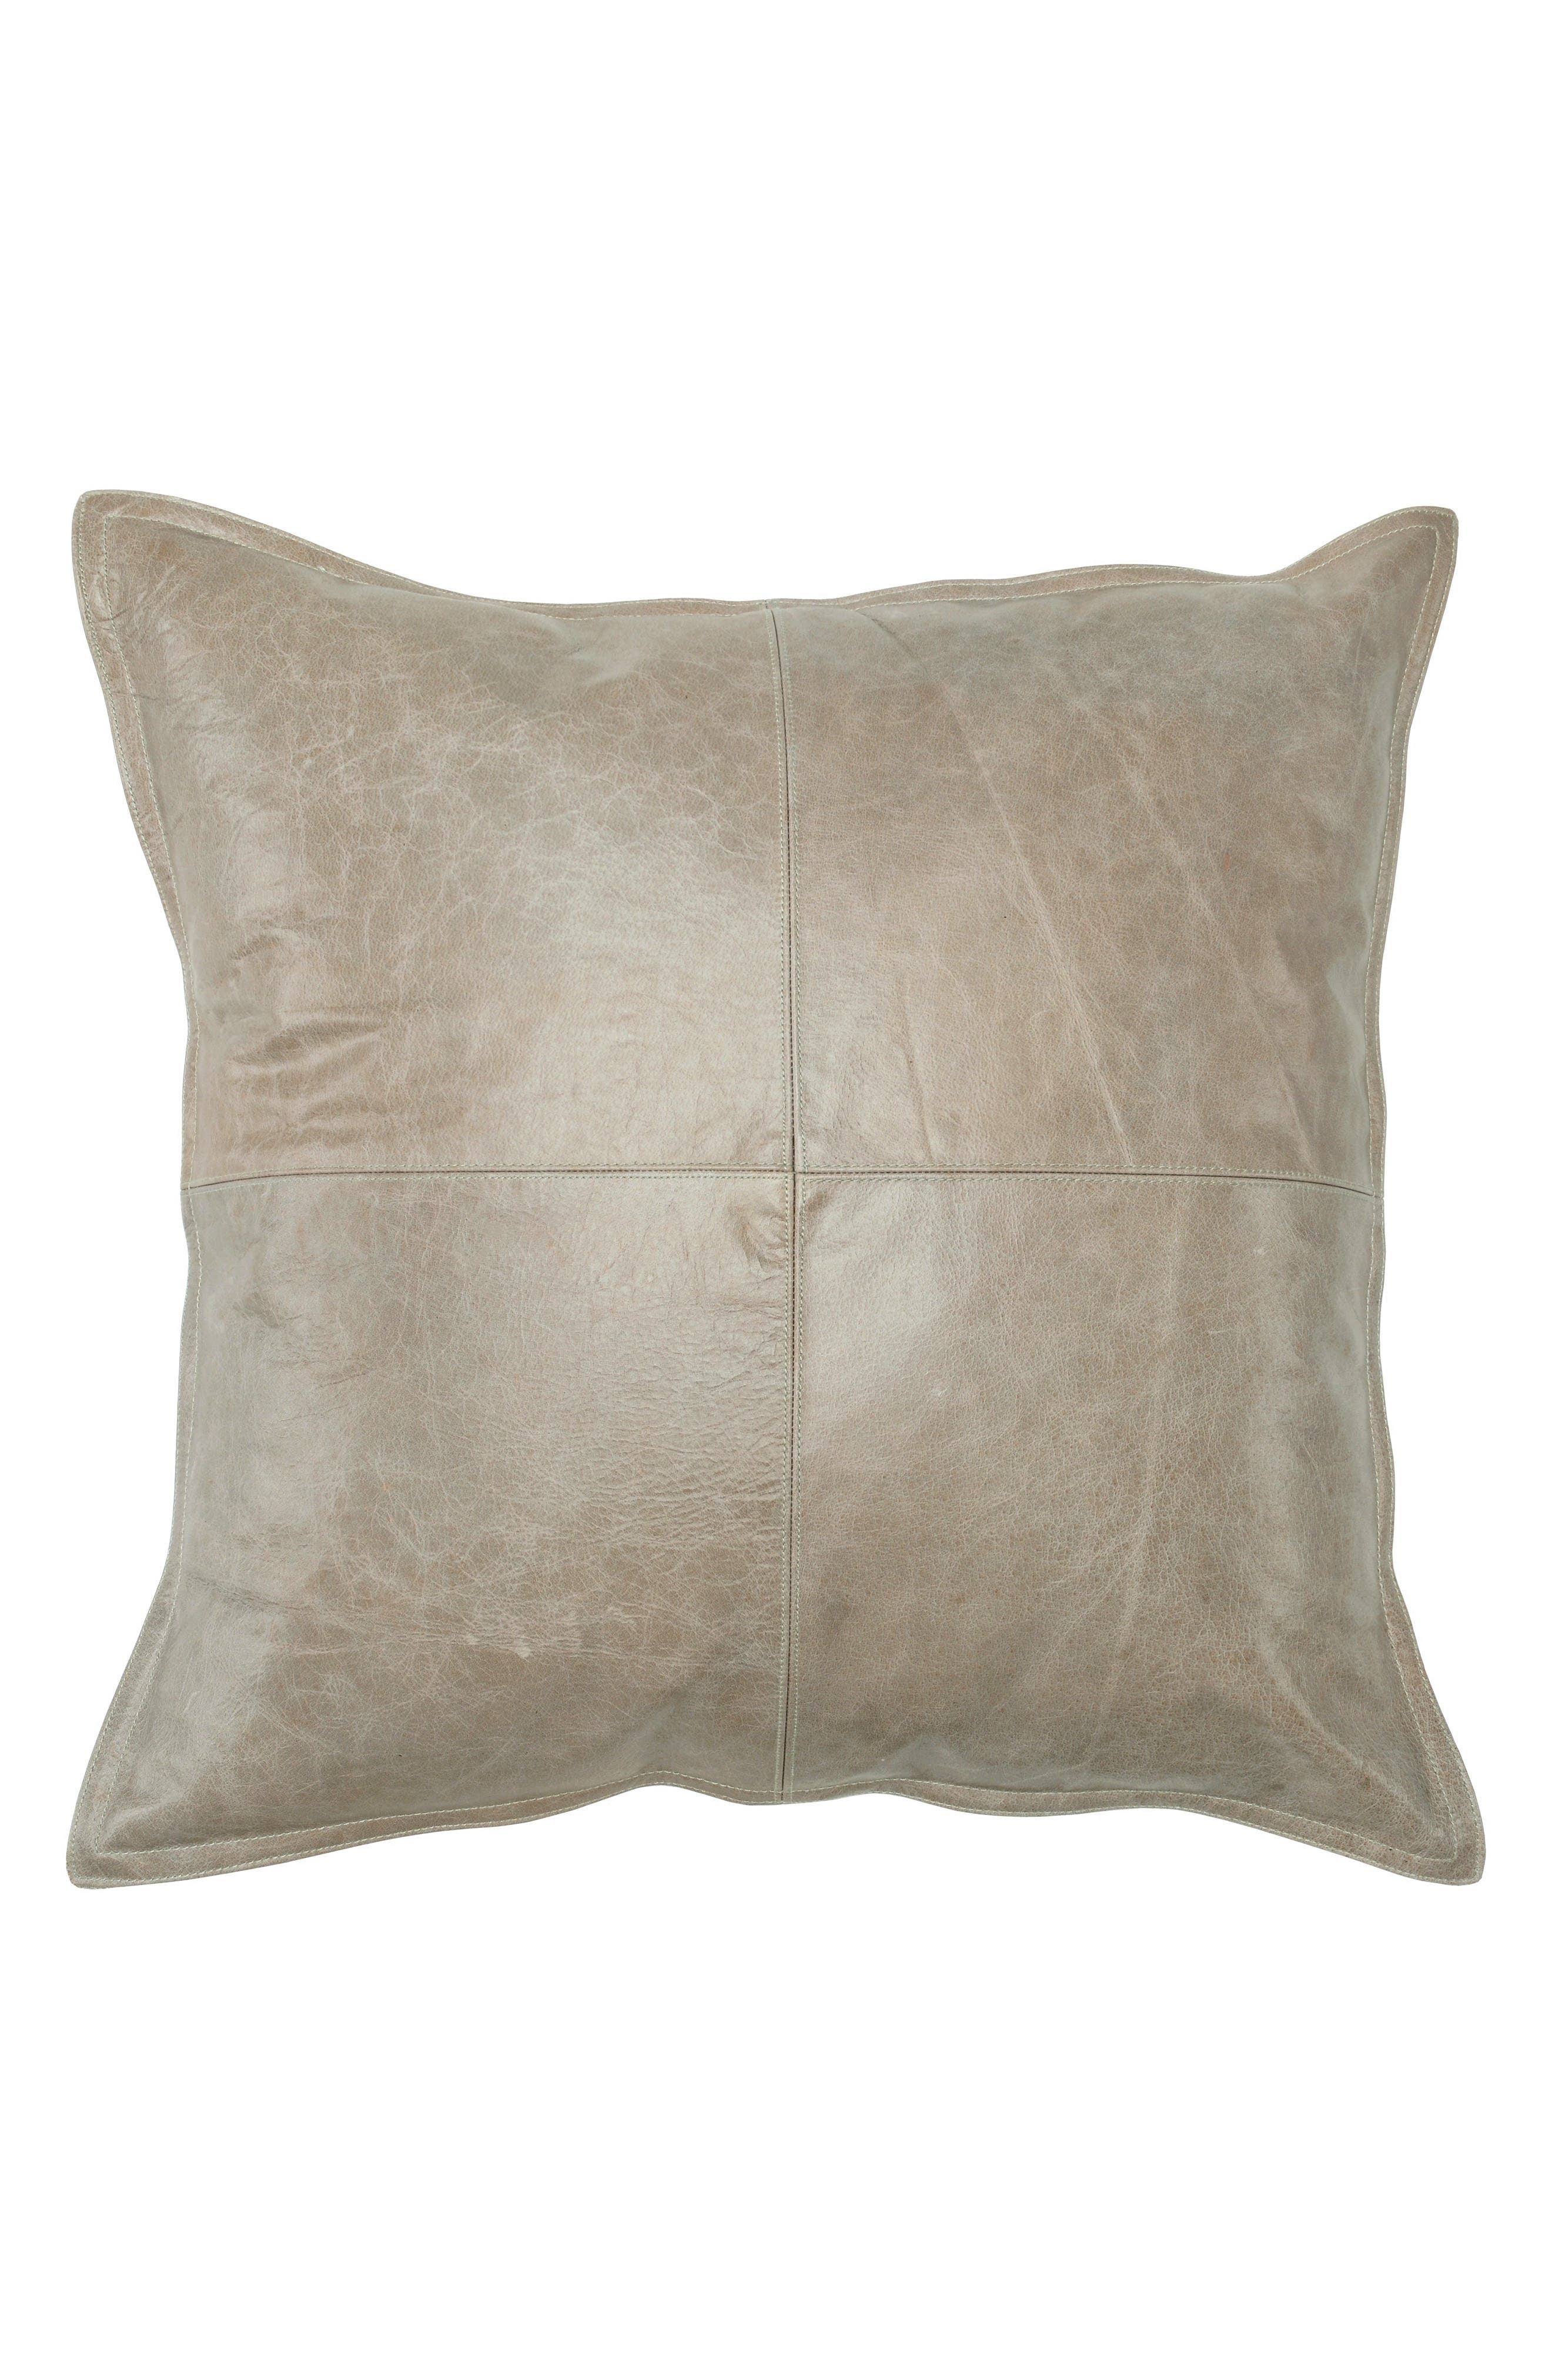 Pike Leather Accent Pillow,                             Main thumbnail 1, color,                             GRAY